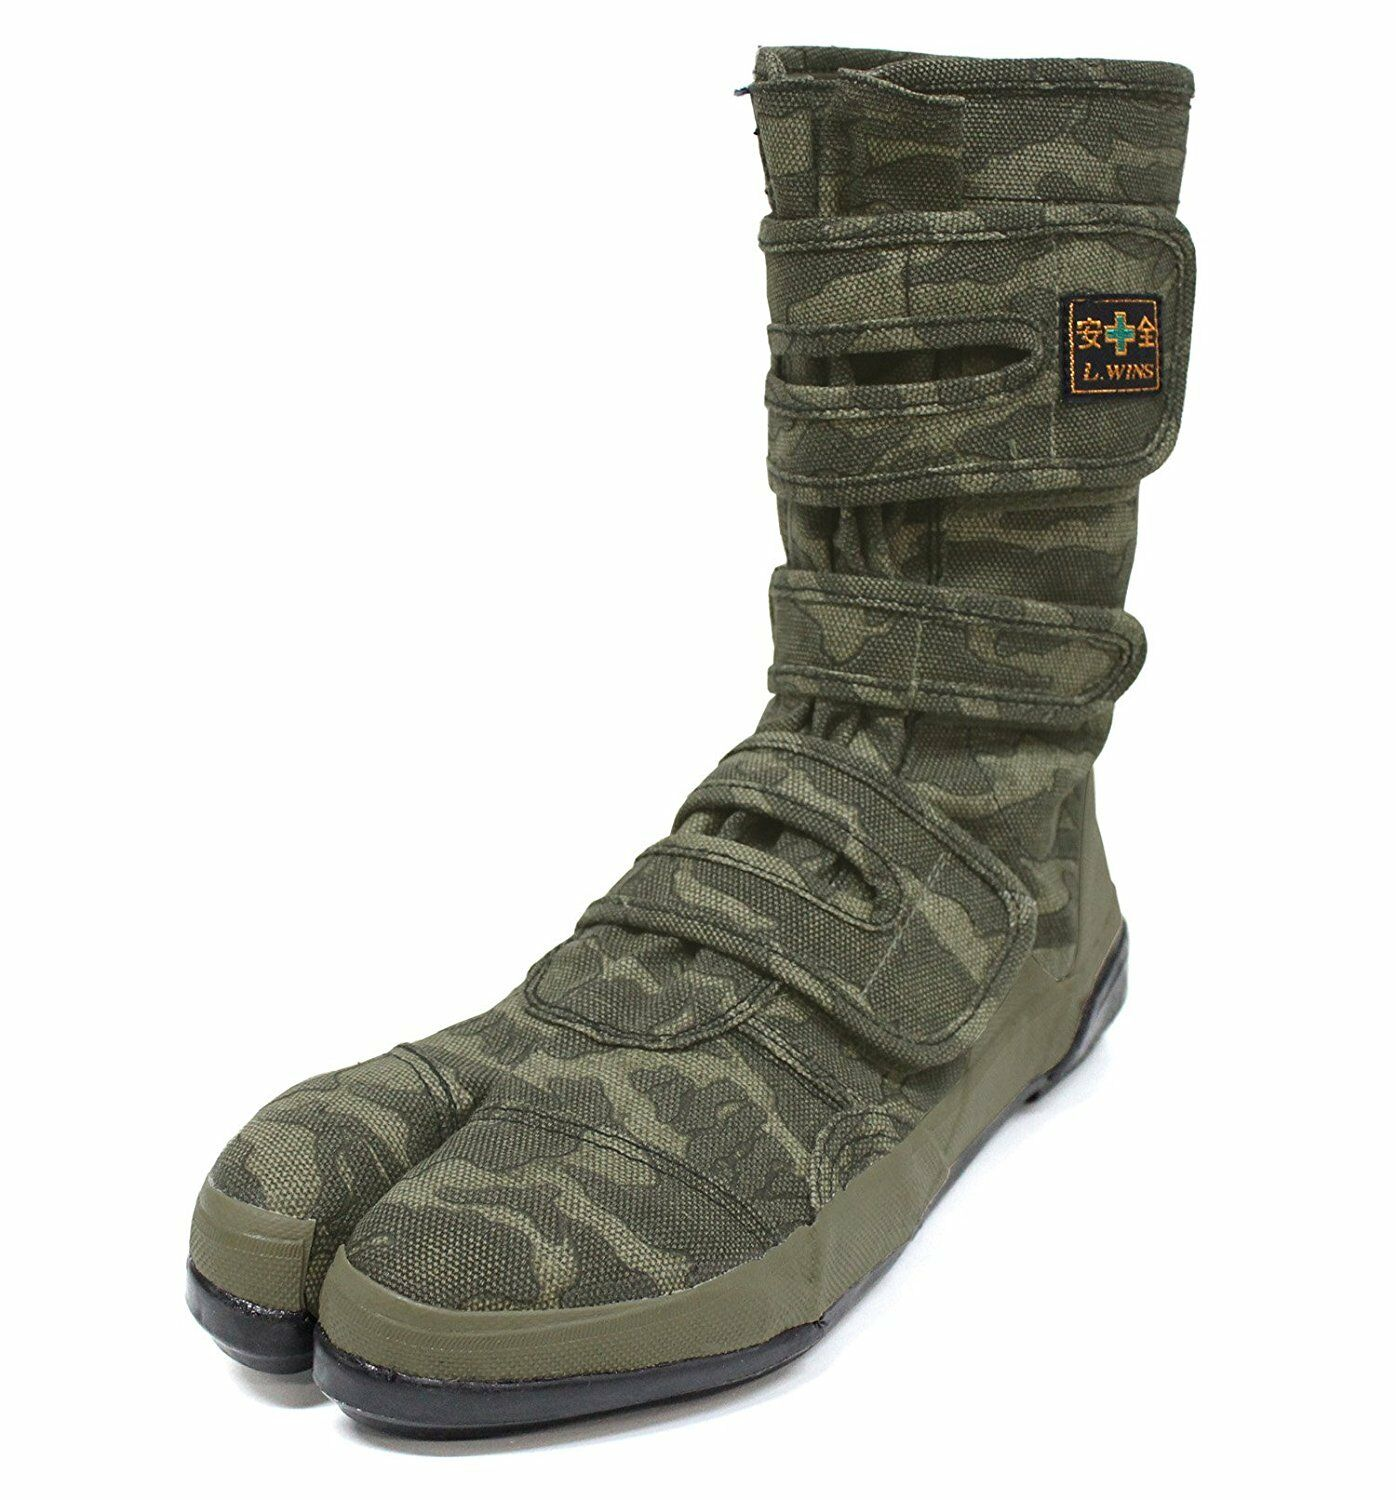 Japanese CAMO SPLIT TOE TABI SHOES GUARD SAFETY Boots VO-8021 Size US7.5(25.5cm)